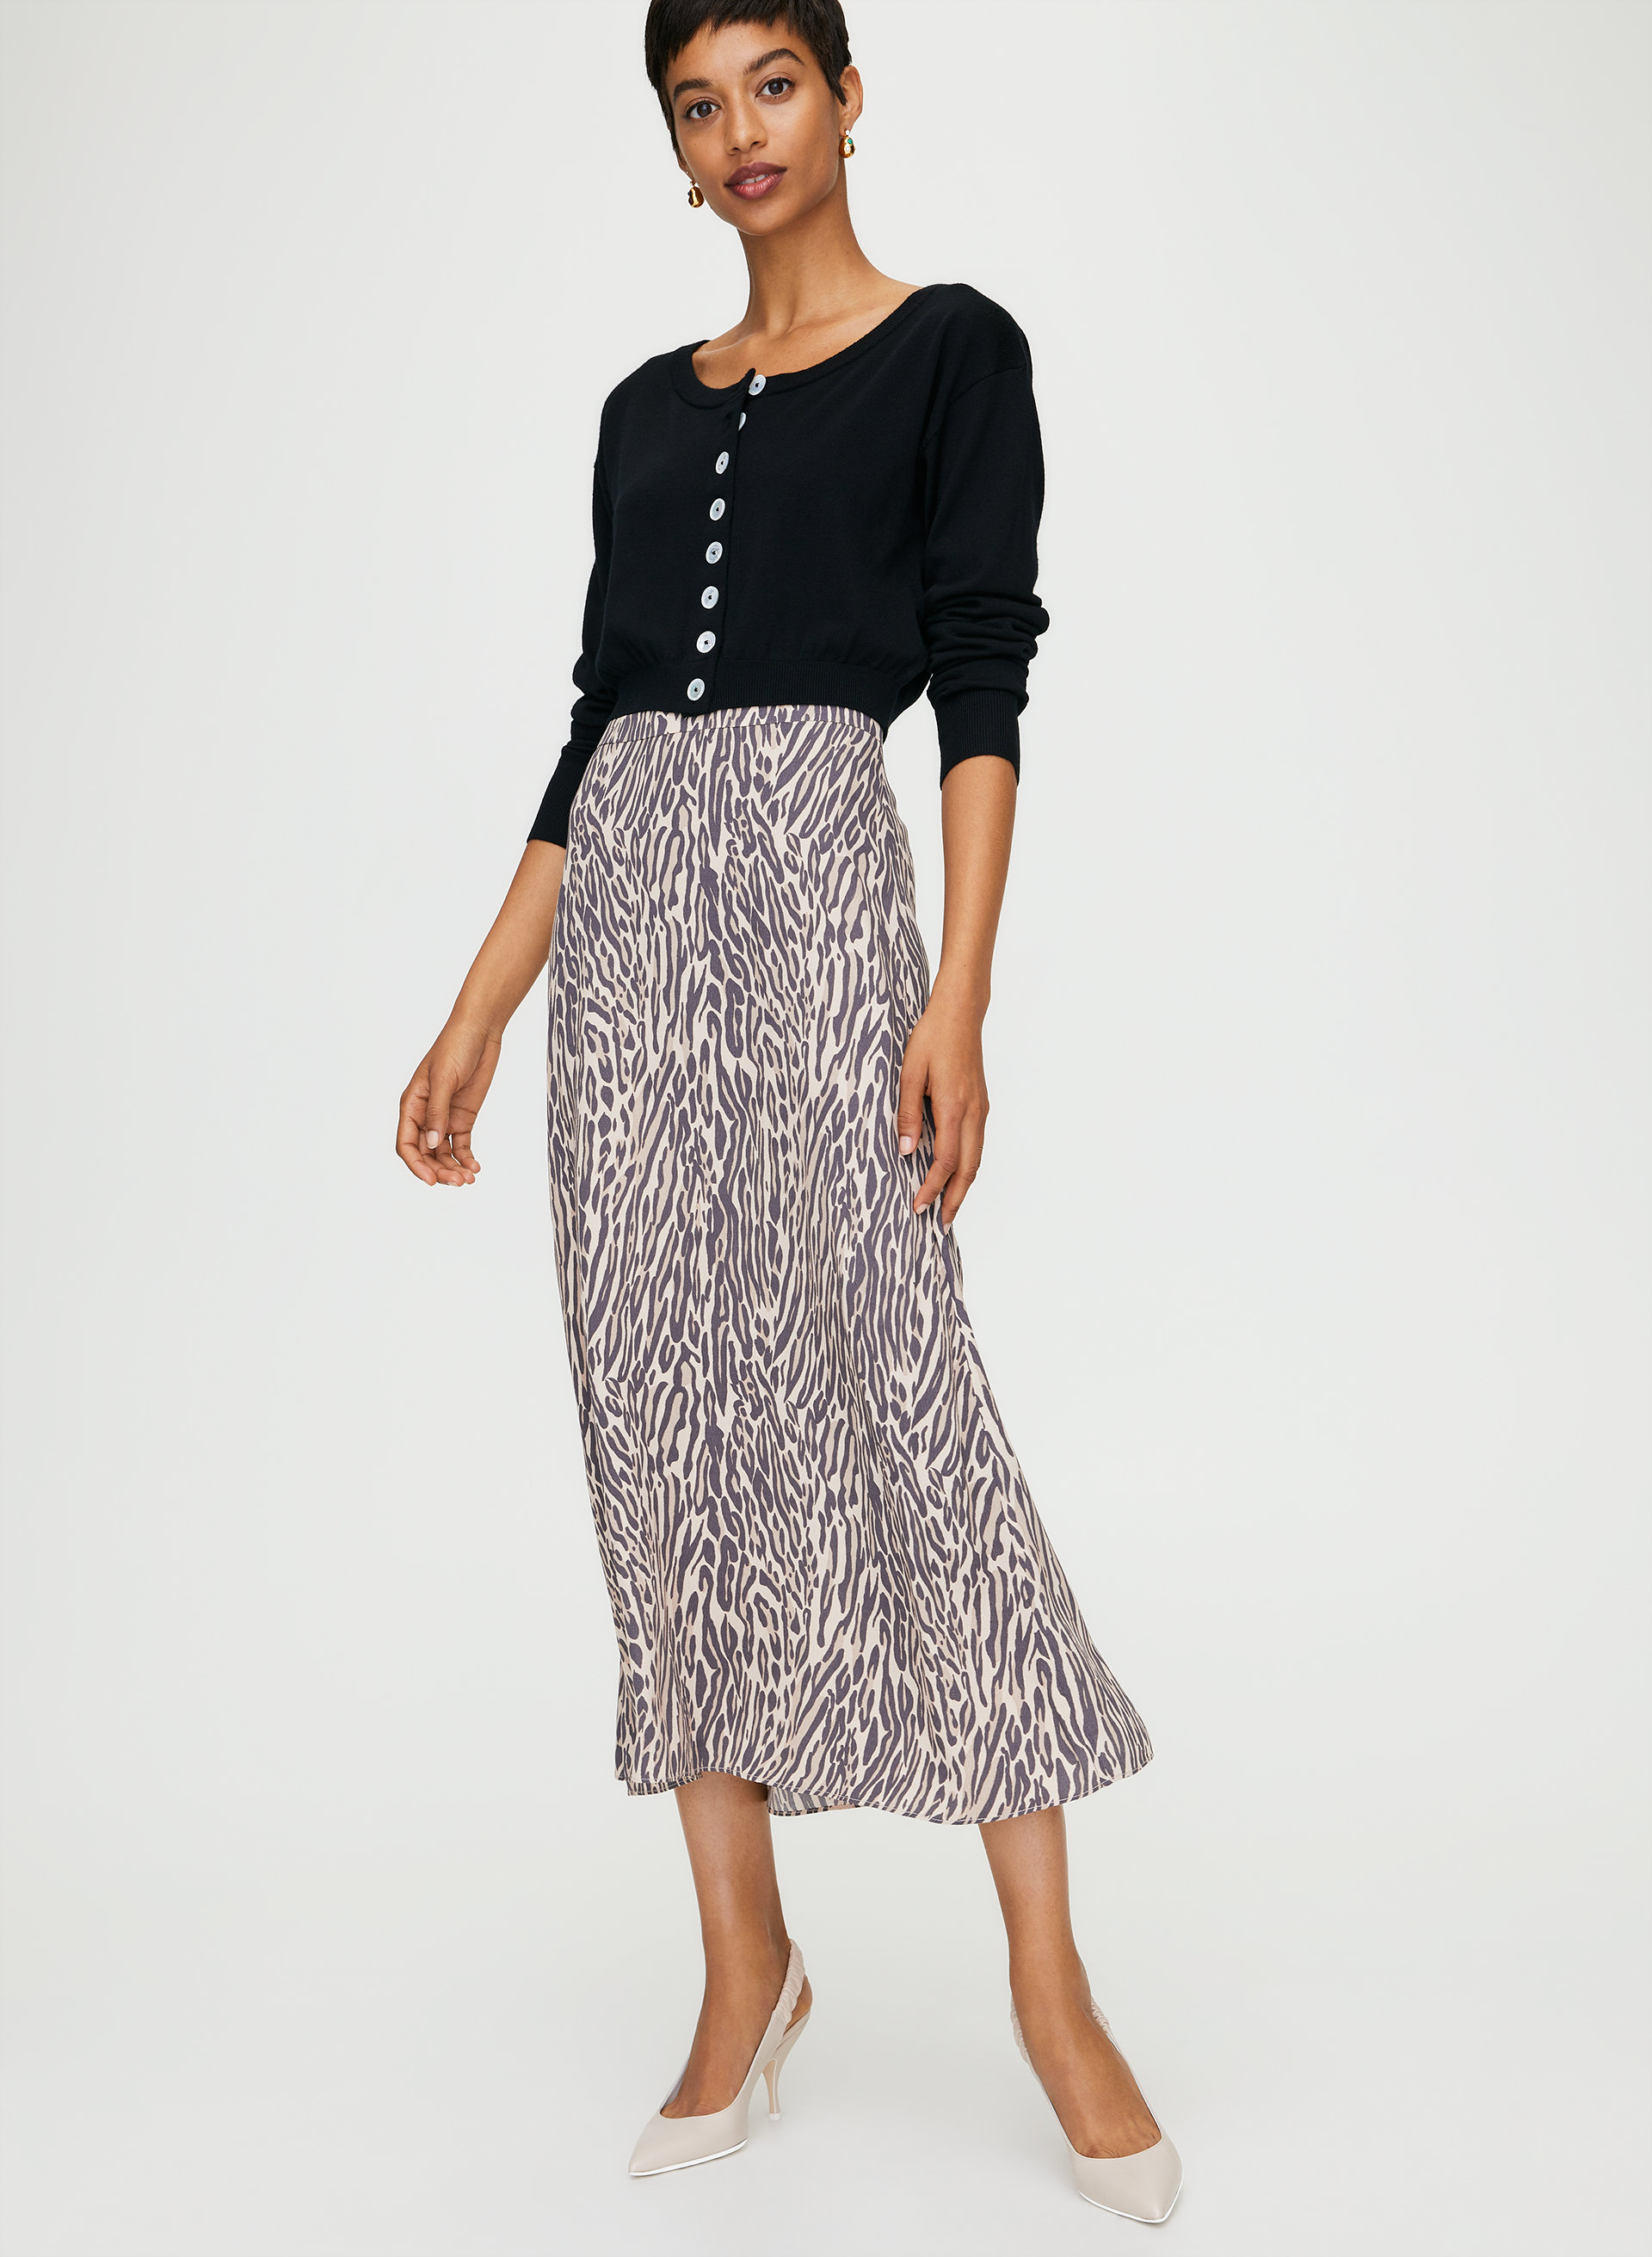 special price for autumn shoes elegant appearance Wilfred MIDI SKIRT | Aritzia CA